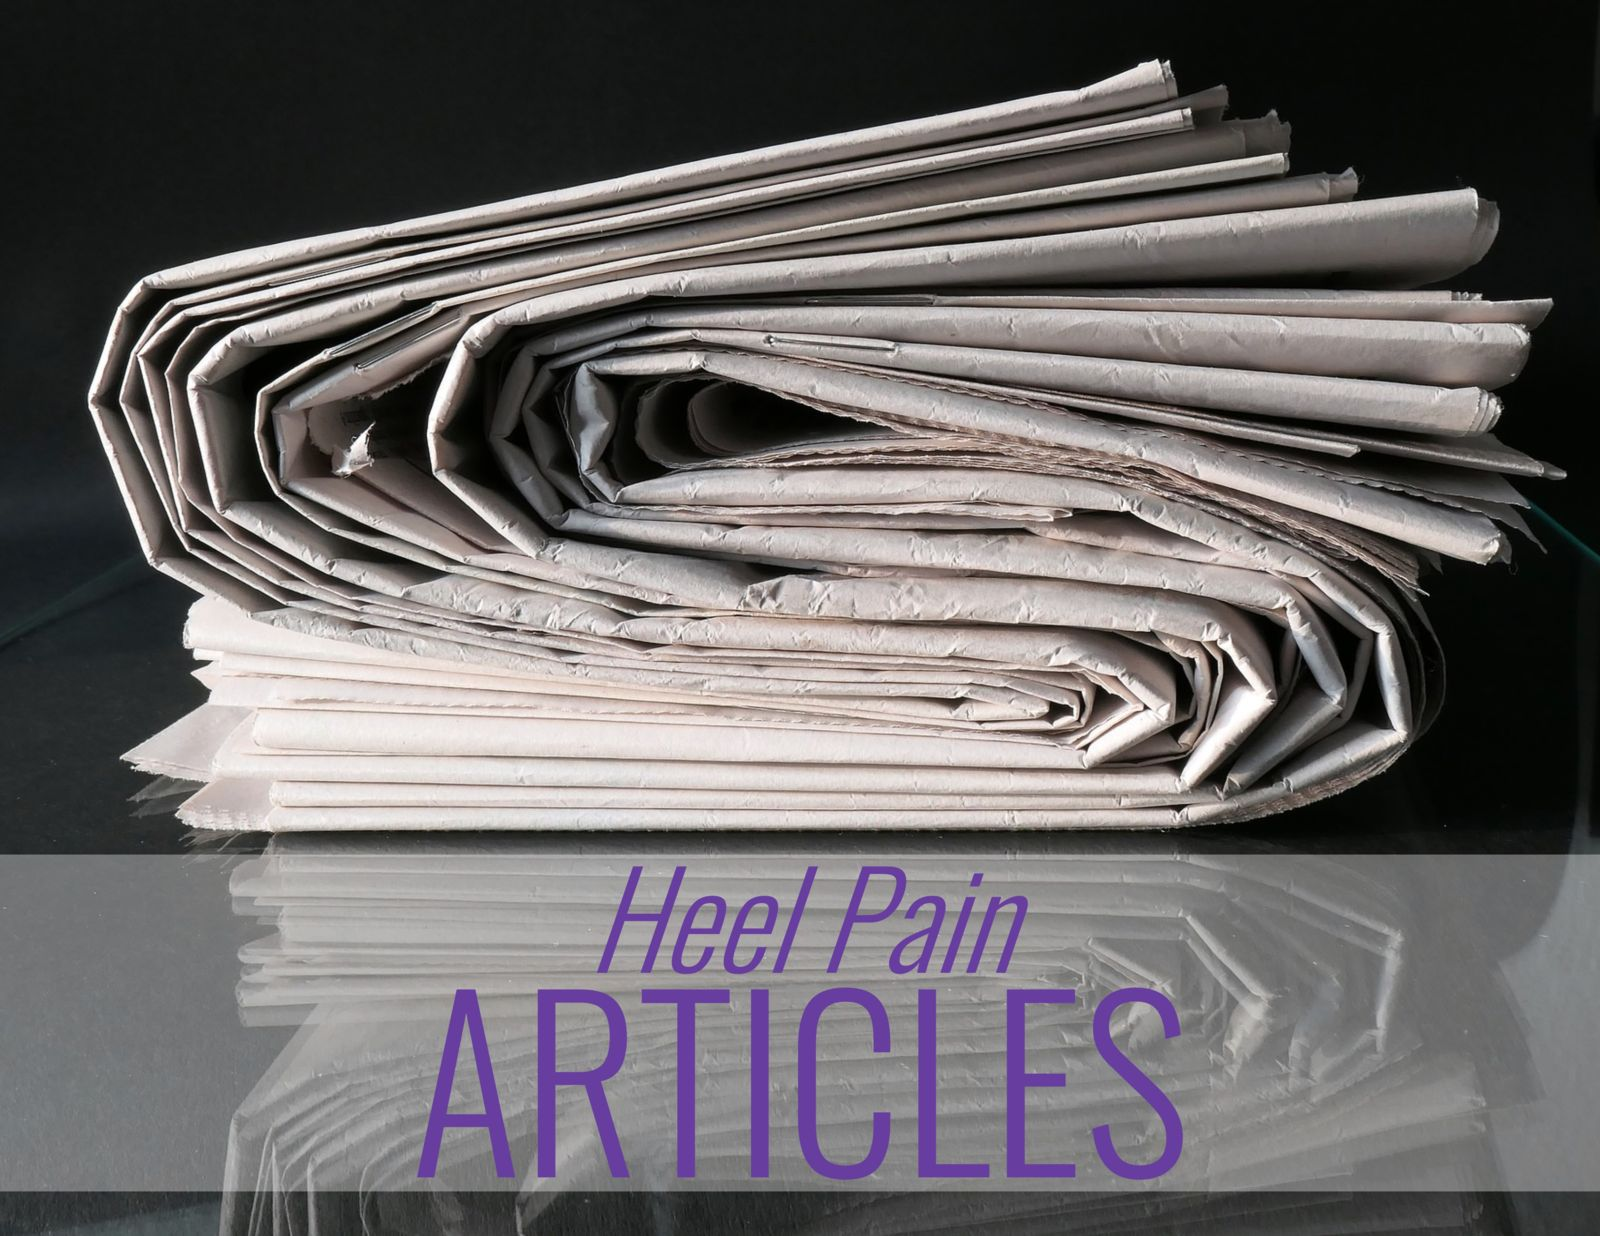 newspapers and the words: Heel Pain Articles